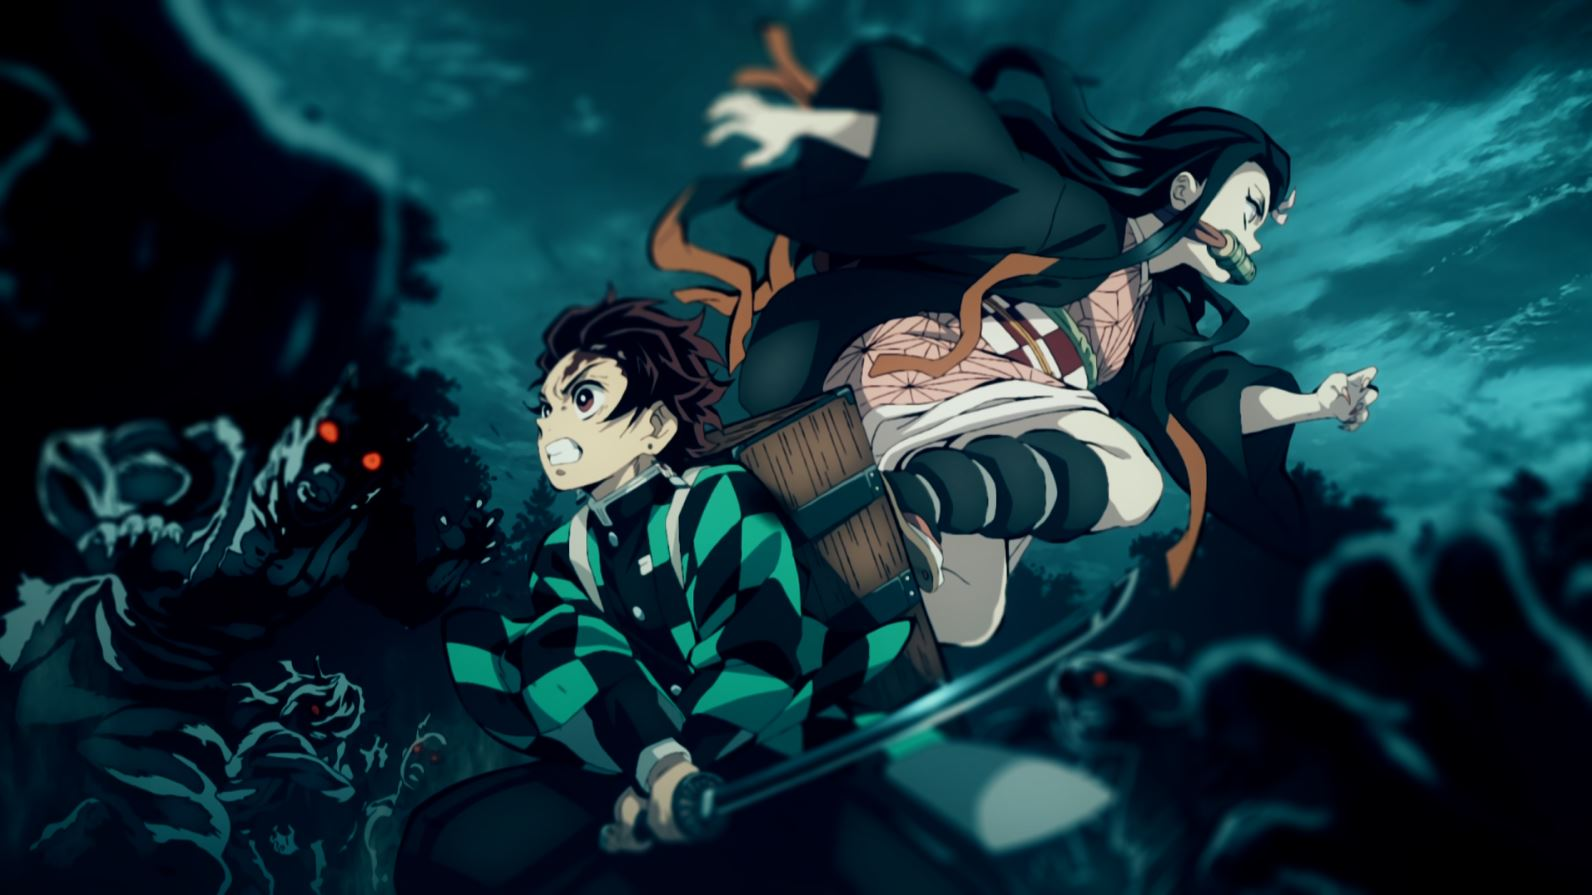 Is Demon Slayer available to stream on Netflix?